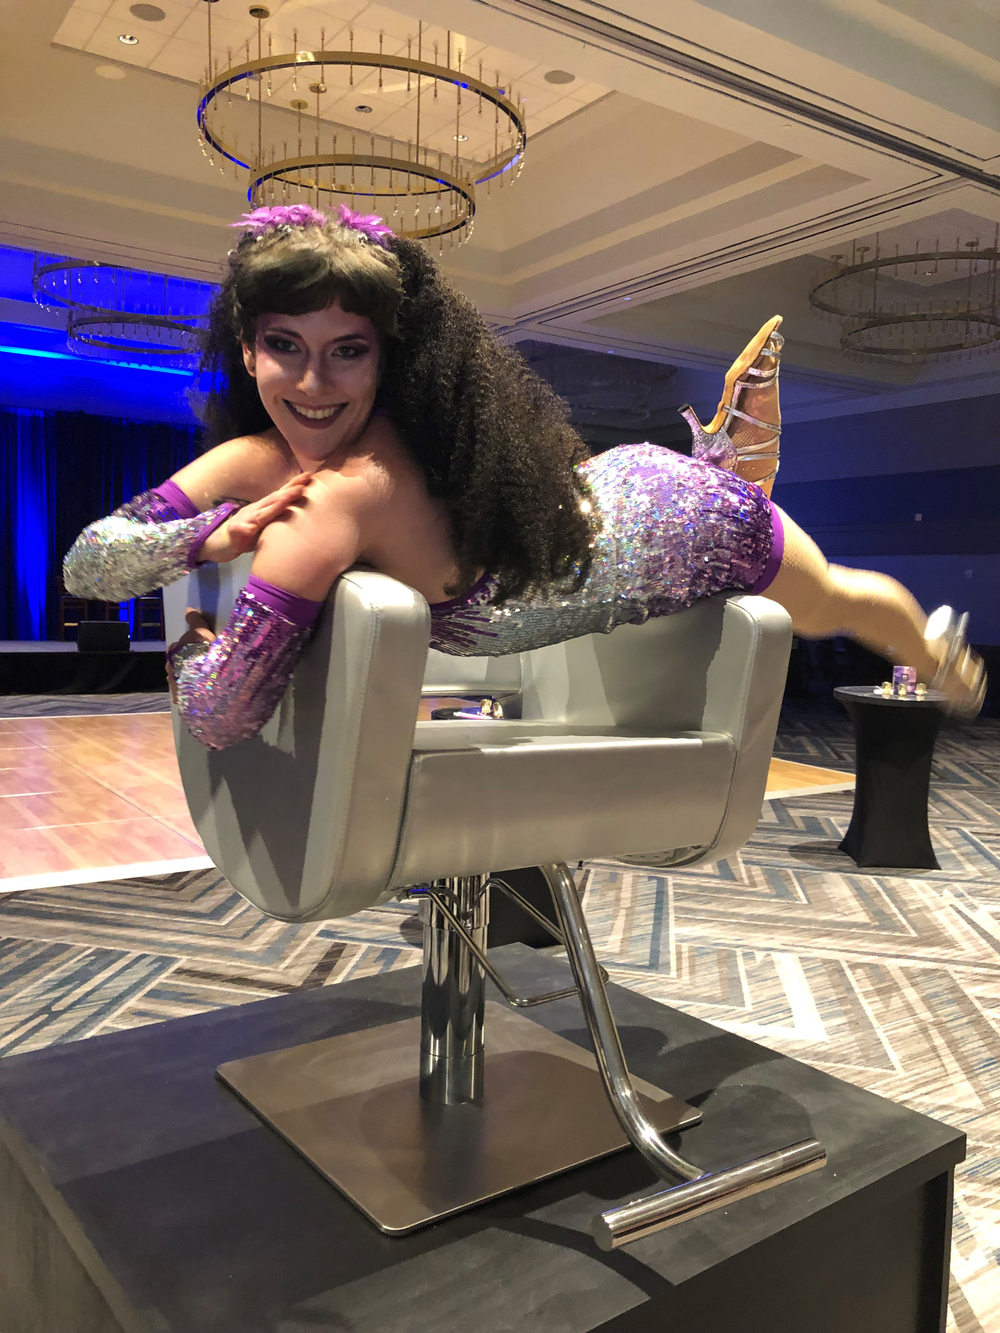 A acrobat poses on a Minerva chair at the DDSS recognition party hosted by Minerva.